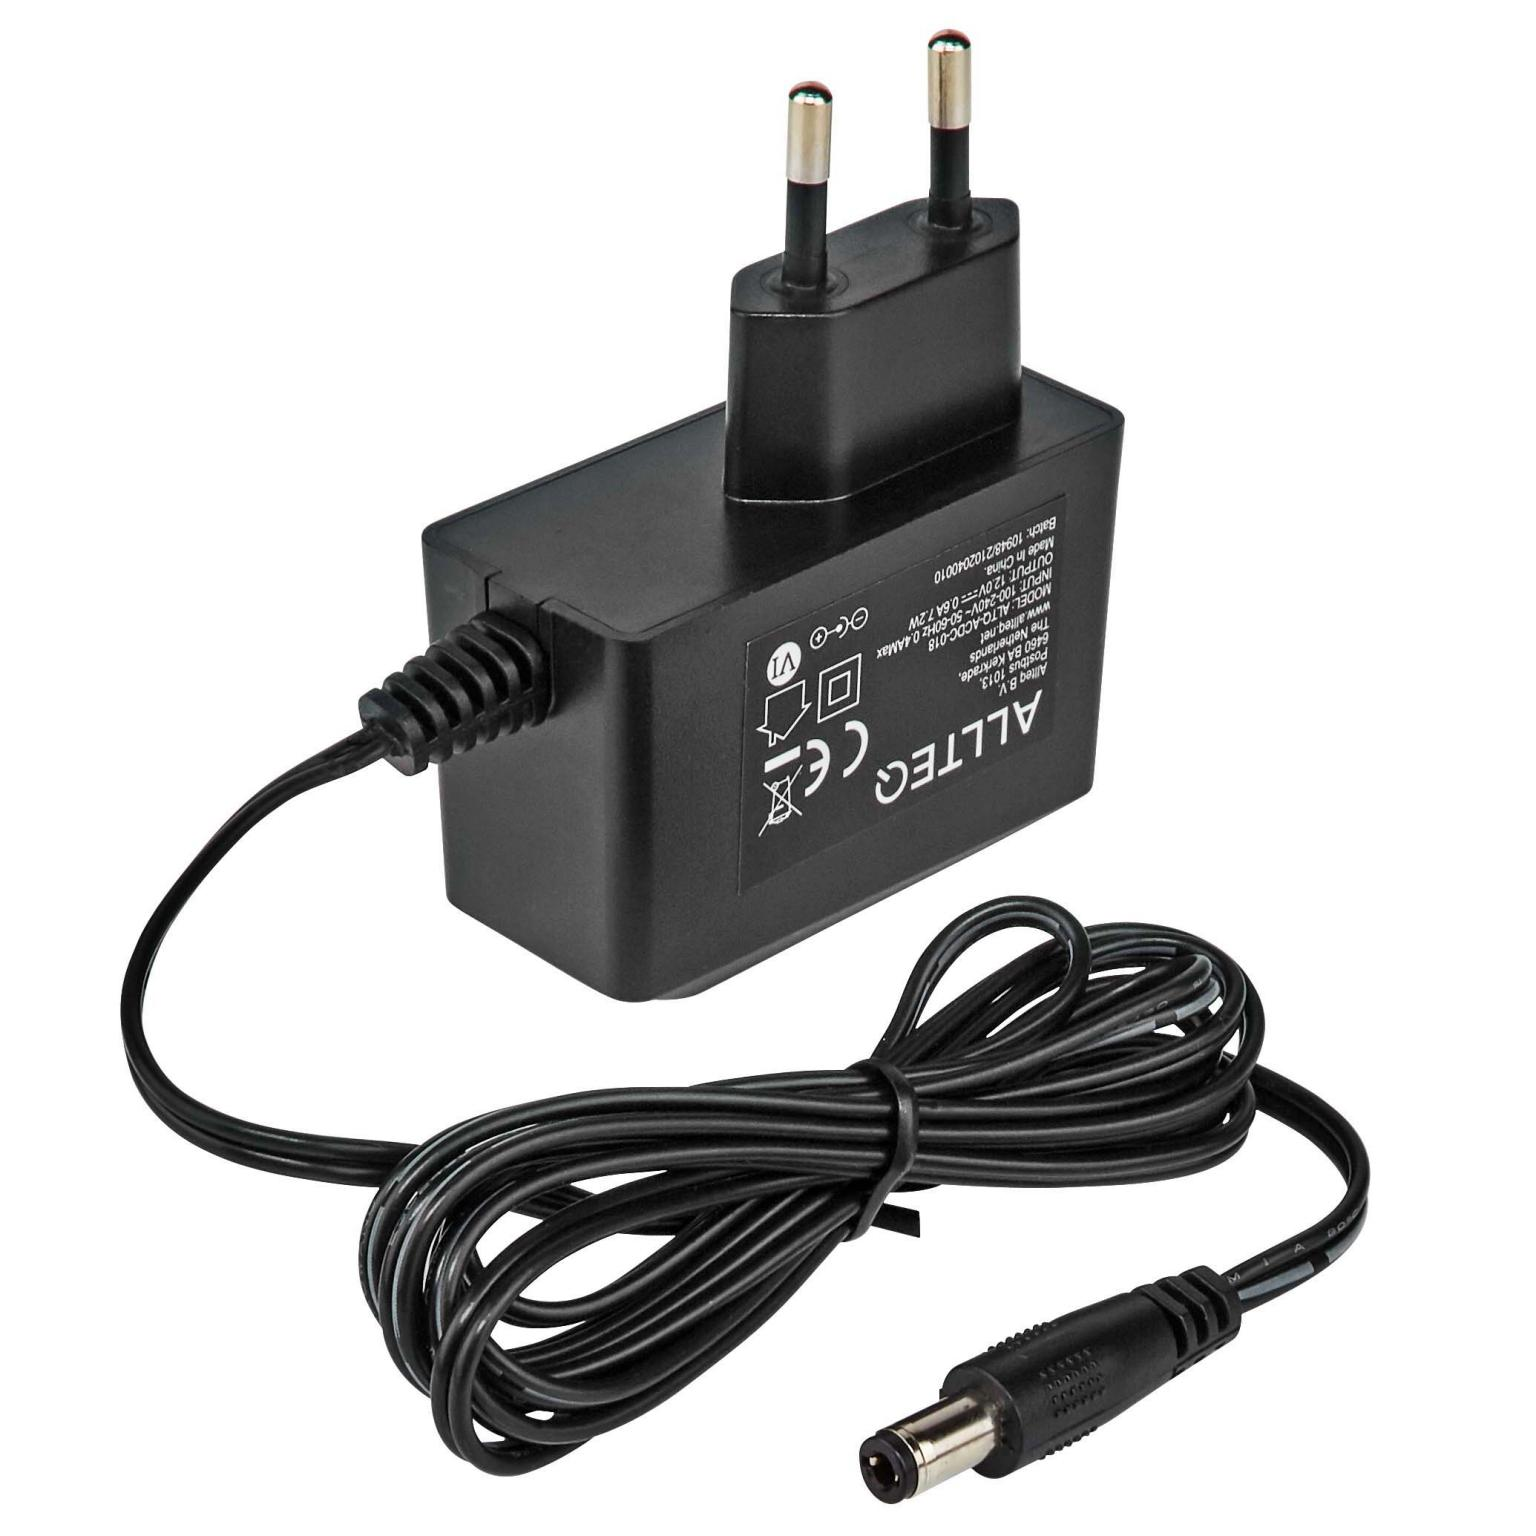 Universele ac dc adapter Spanning uit: 12 Volt